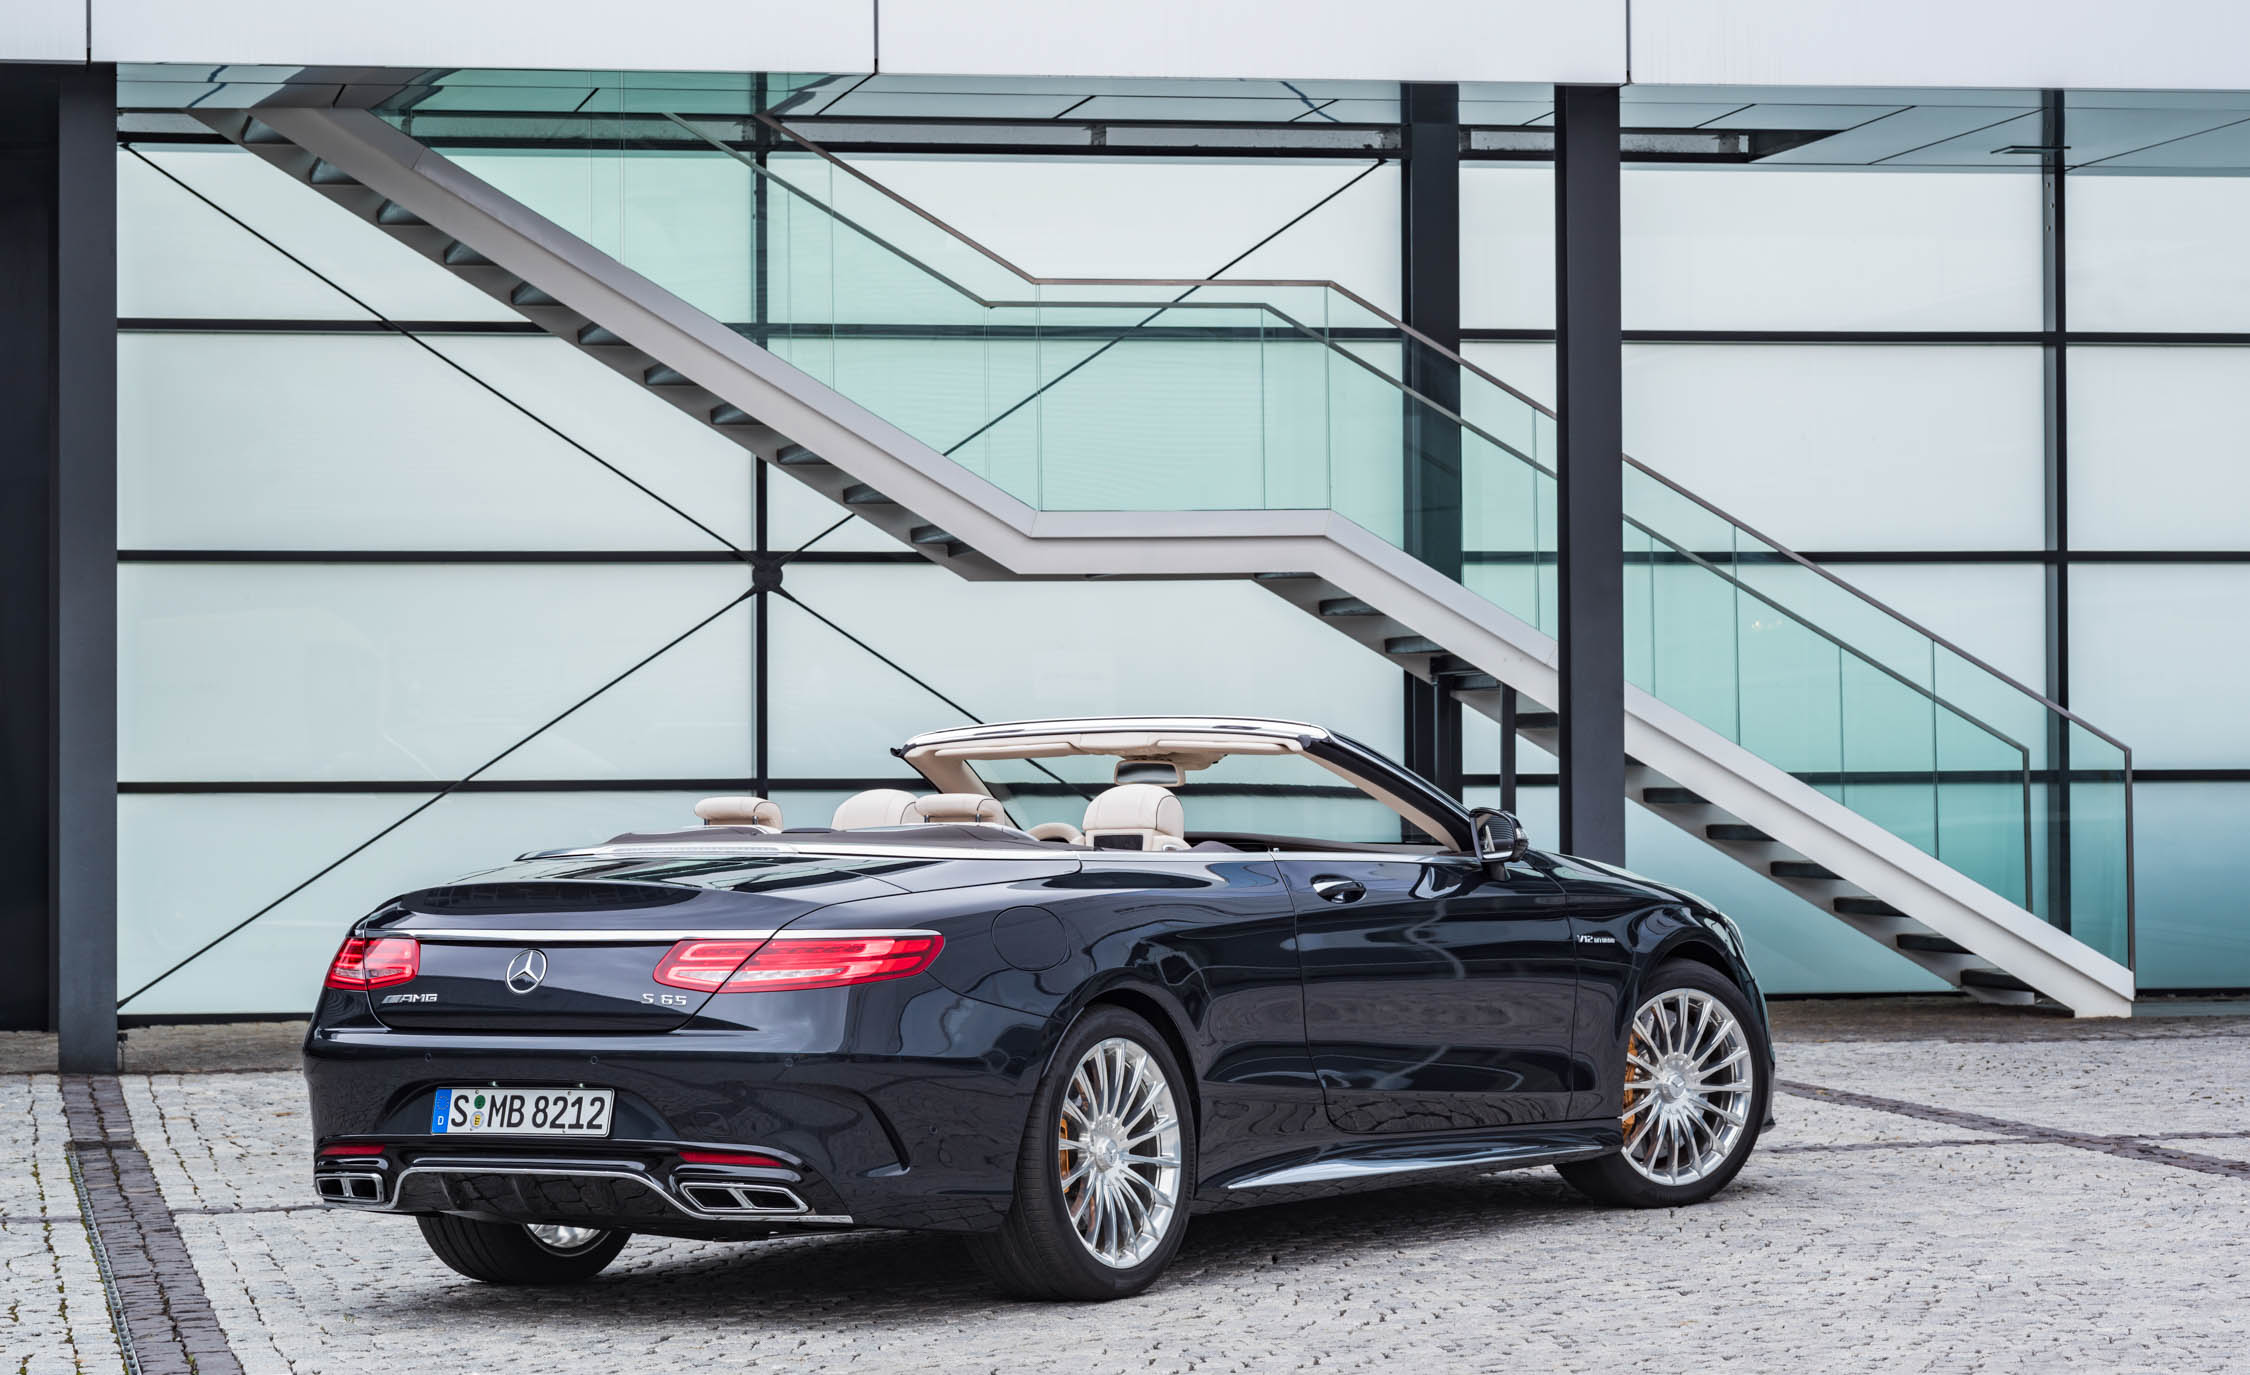 2017 Mercedes Amg S65 Cabriolet Exterior Rear And Side View Roof Open (Photo 8 of 15)